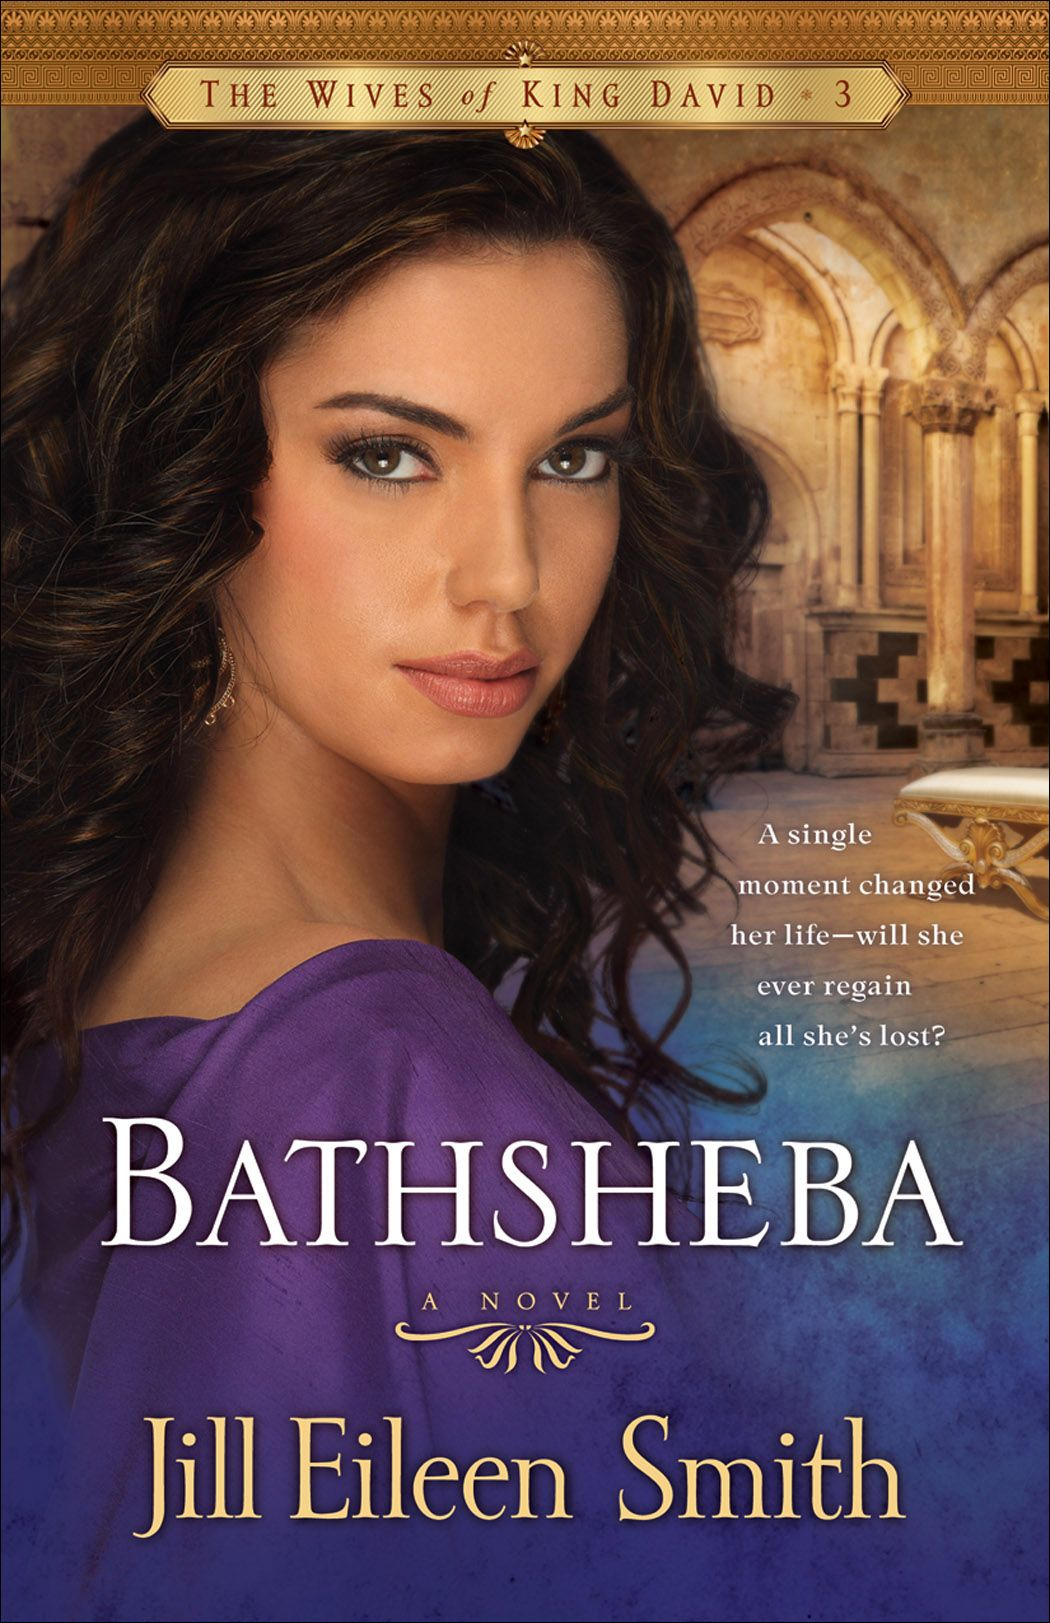 Jill Eileen Smith - Bathsheba. Please, take a look here and vote! http